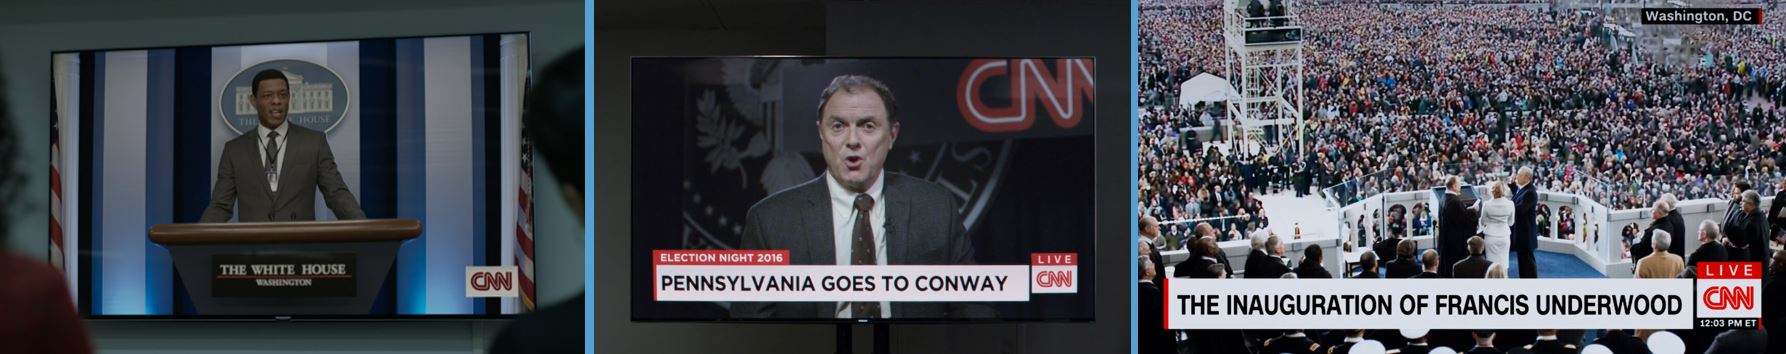 CNN house of cards season 5 product placement branding